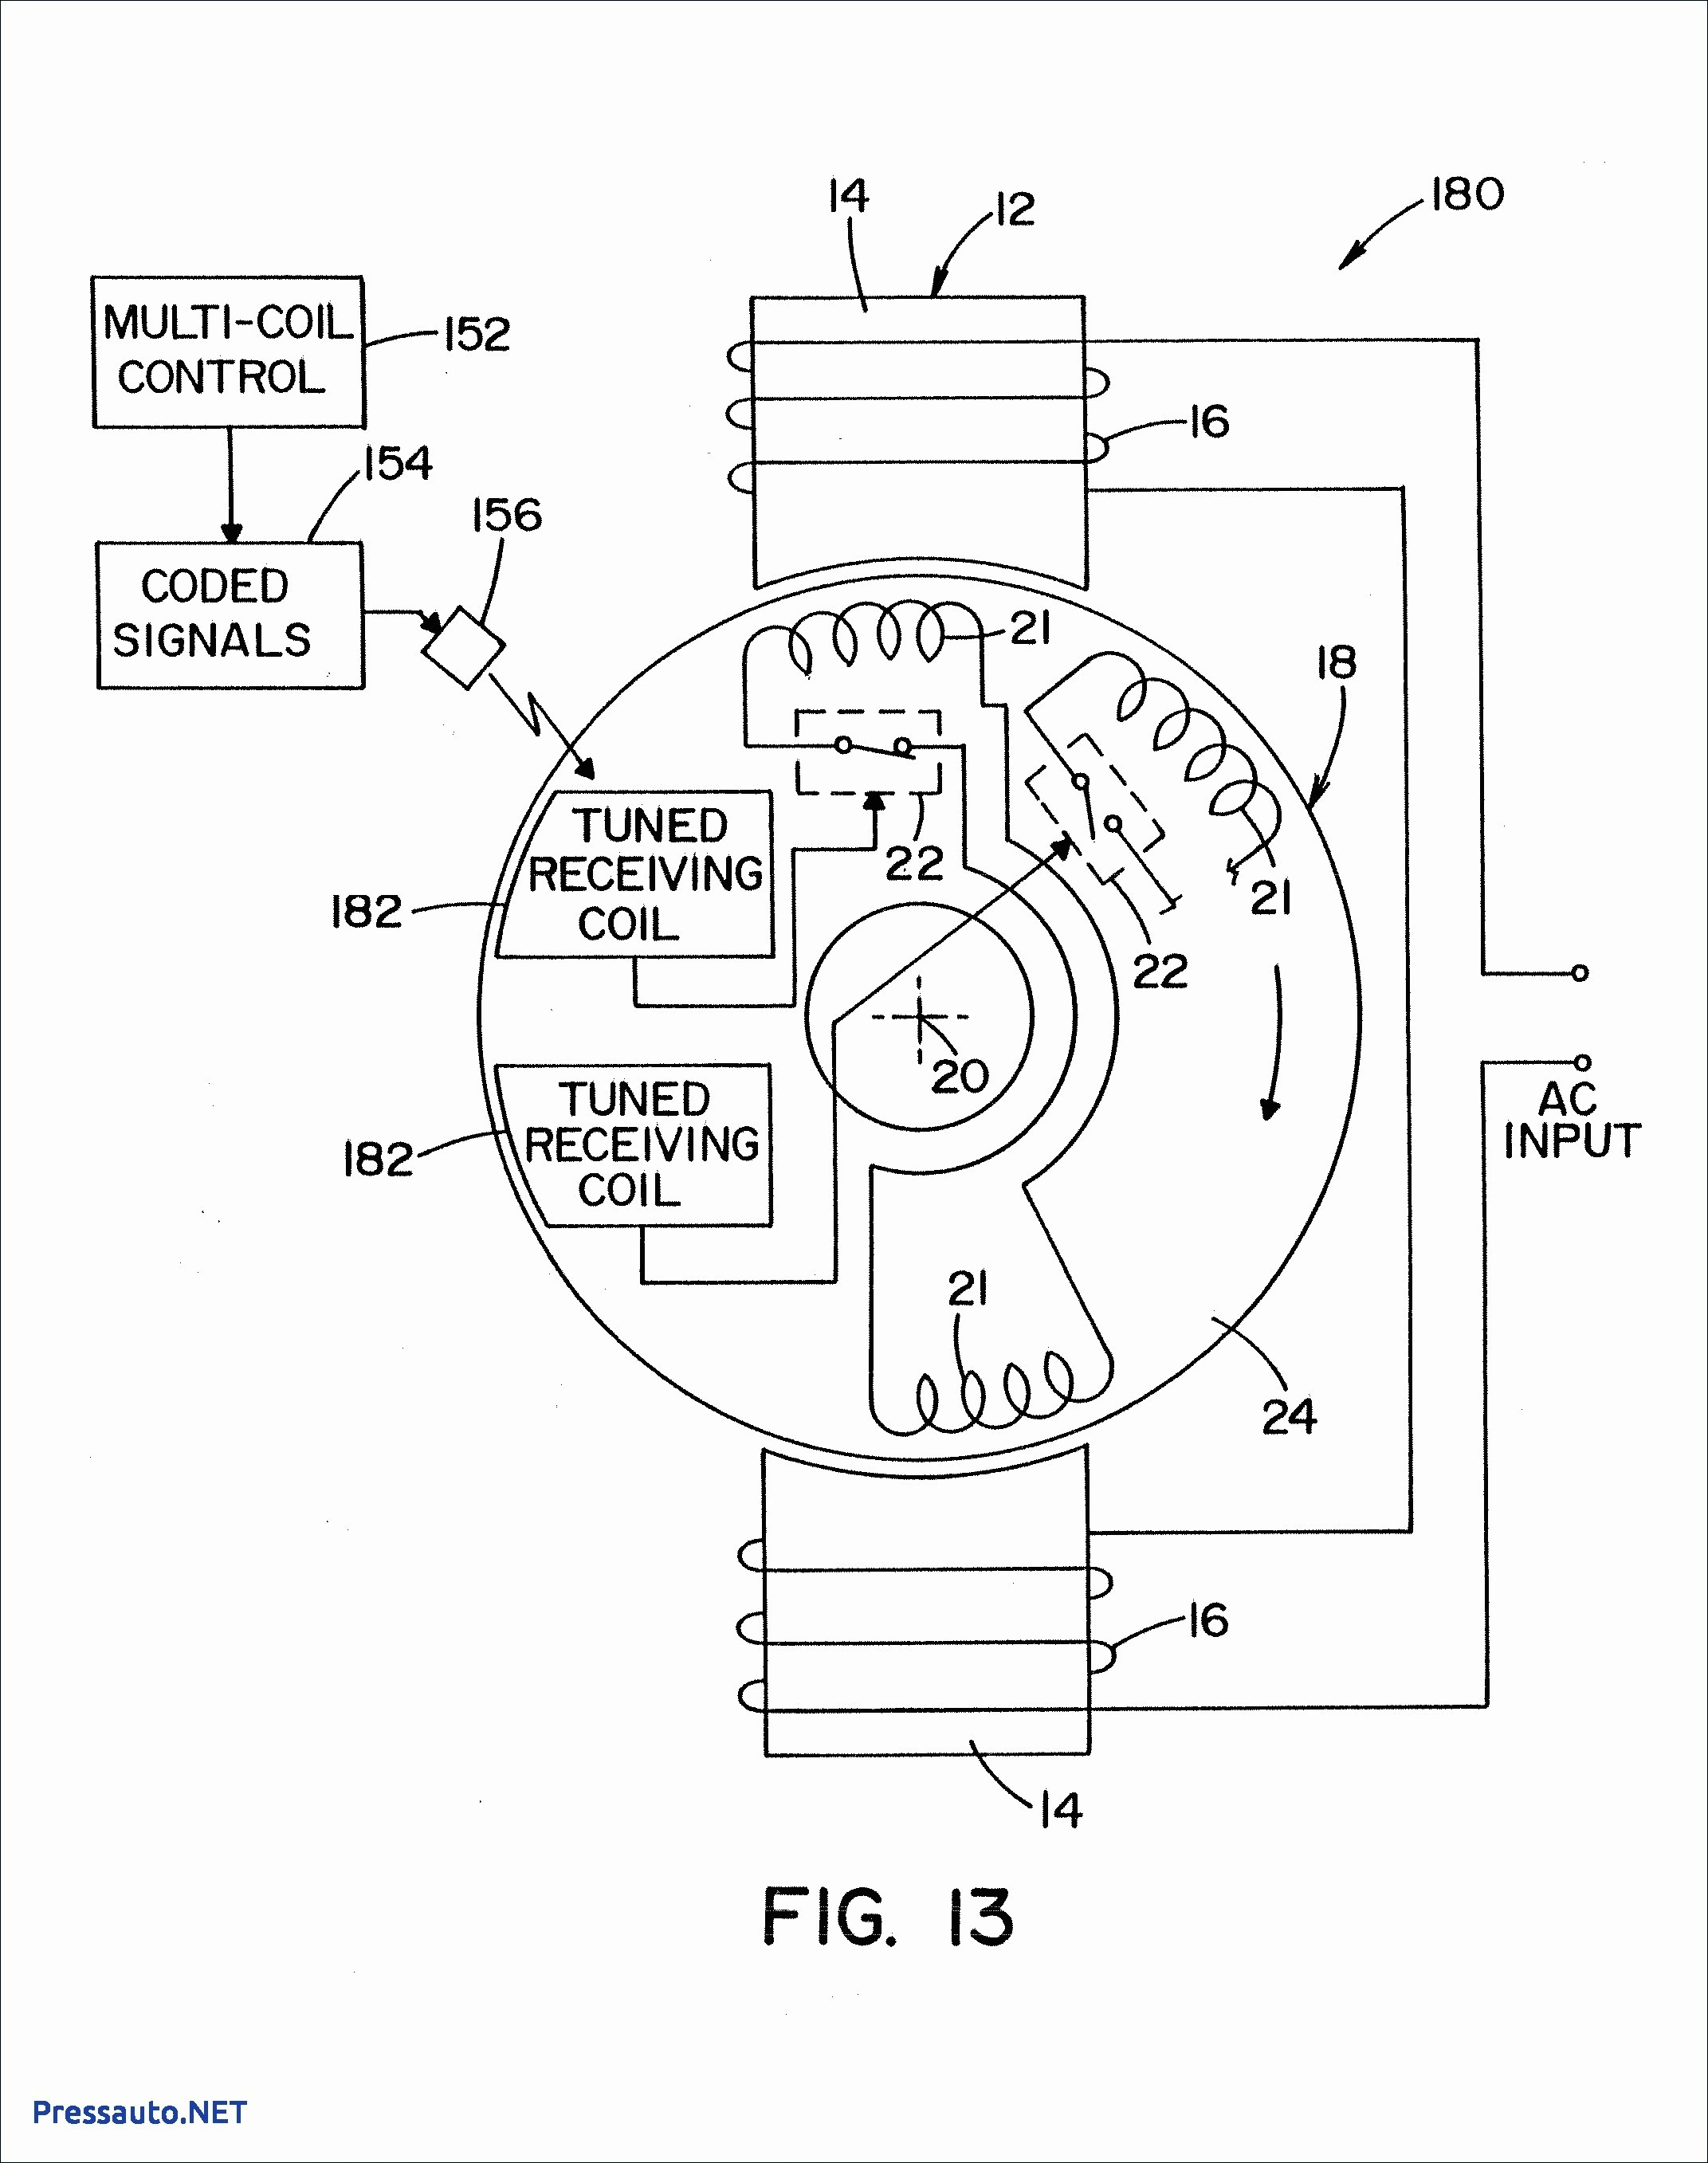 Automatic Vent Damper Wiring Diagram from 2020cadillac.com